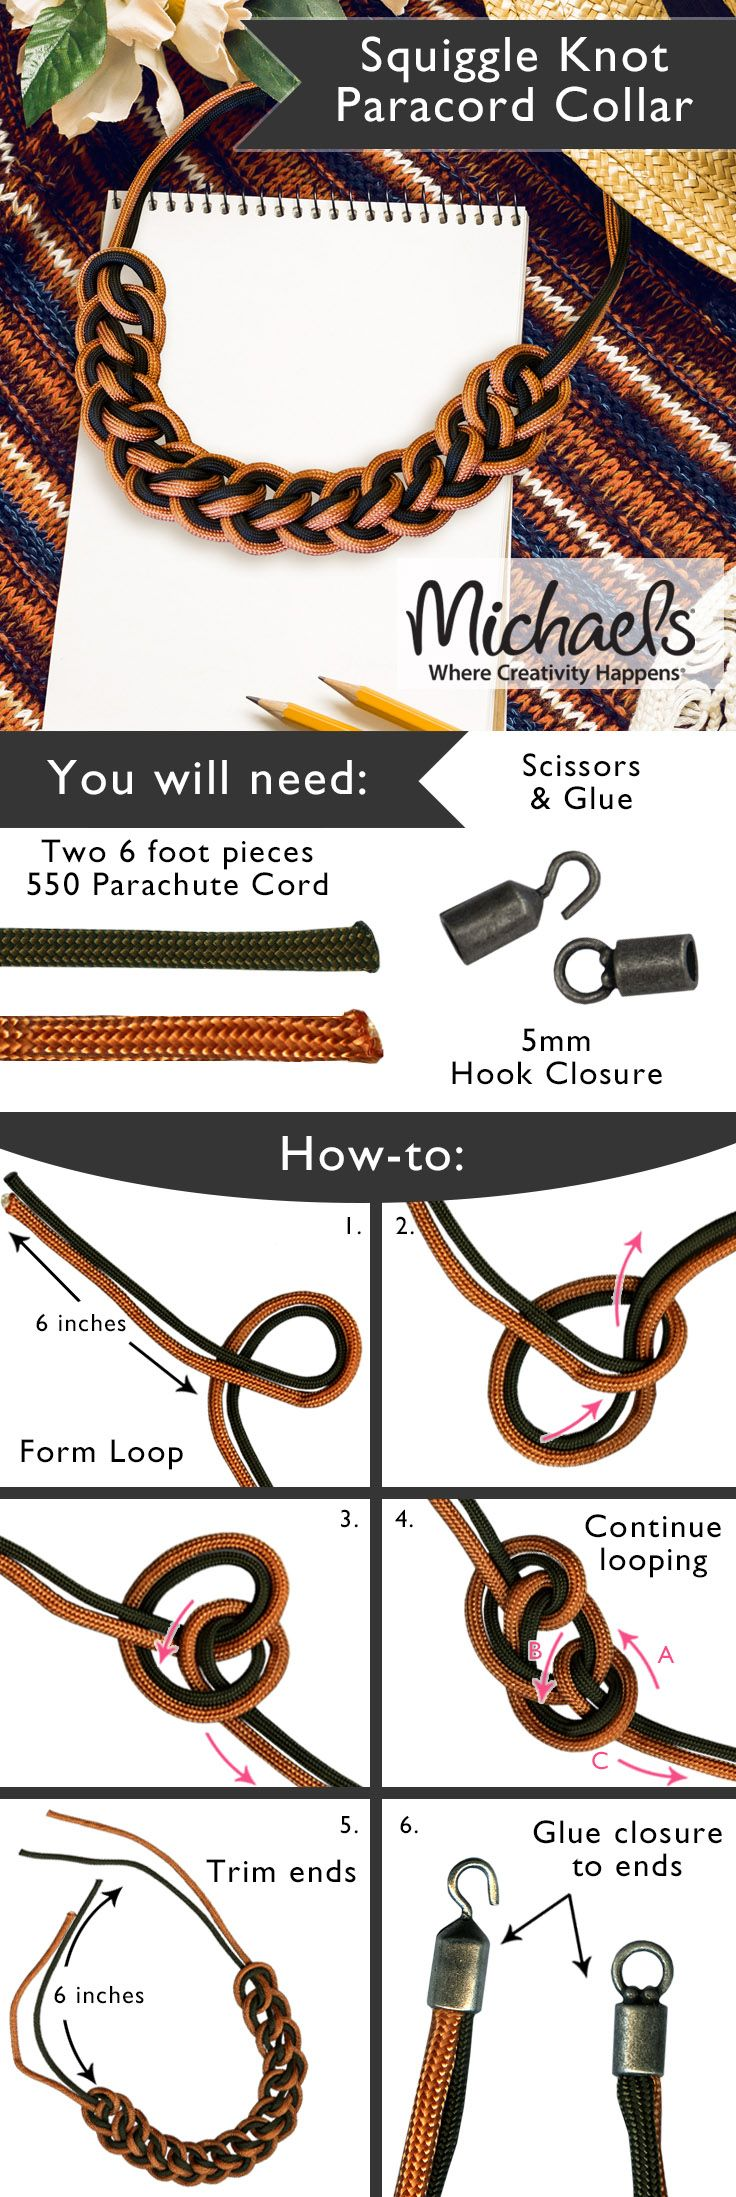 Create a stylish Paracord Collar Necklace with this easy step by step how to http://amzn.to/2ryZsCT